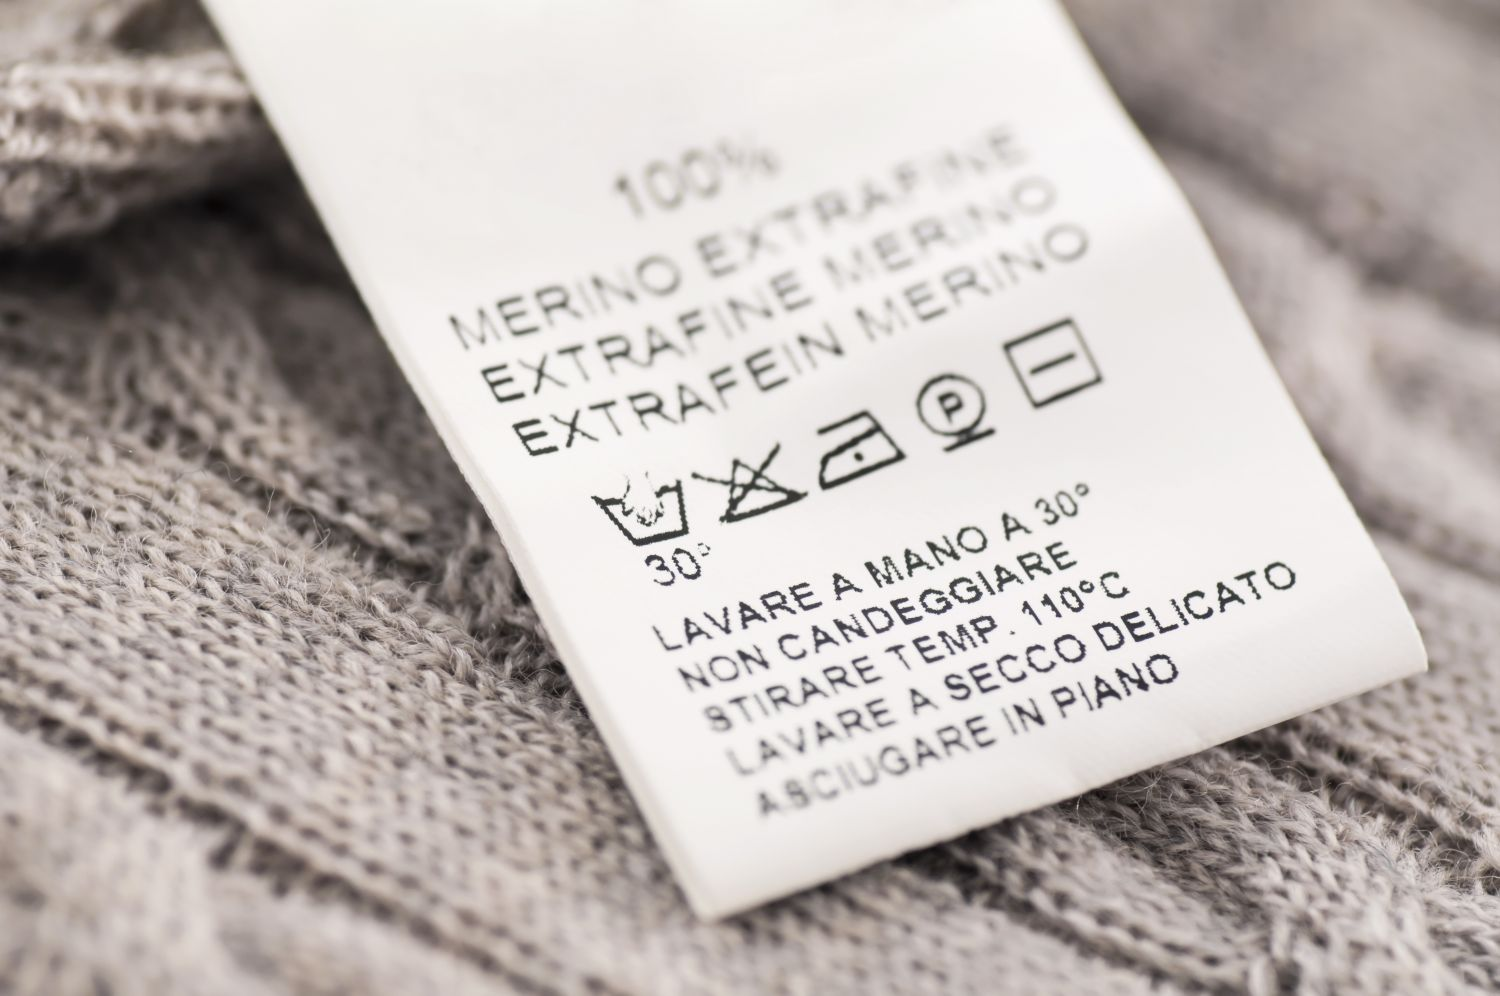 Knowing the garment care symbols is very helpful, specially when the label itself is in a language other than English.